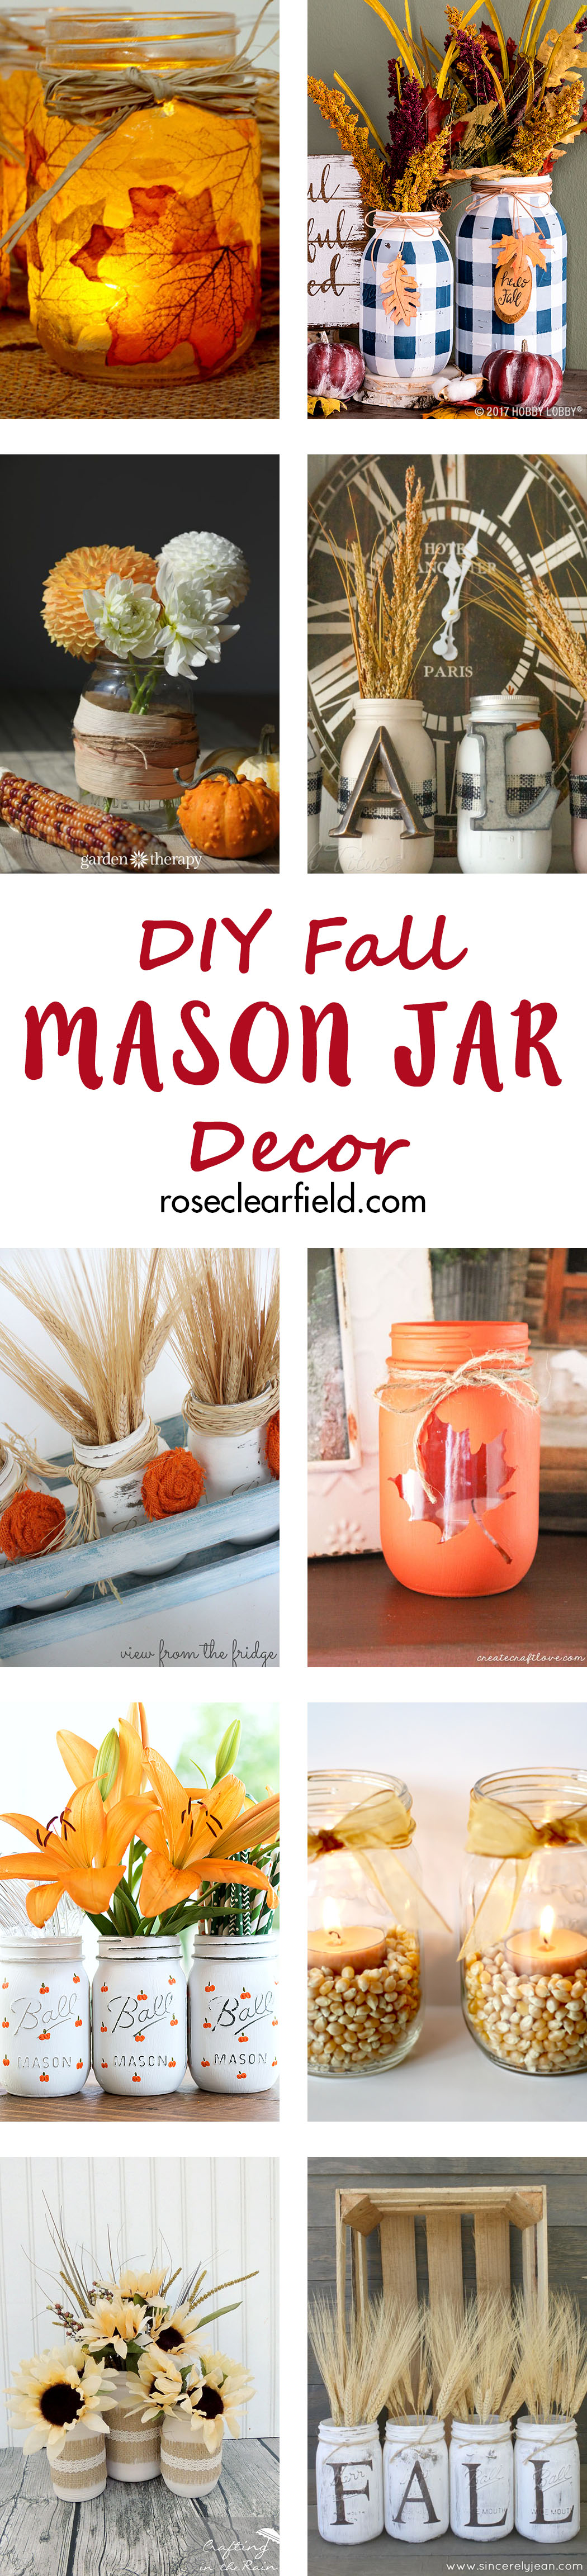 DIY Fall Mason Jar Decor | https://www.roseclearfield.com